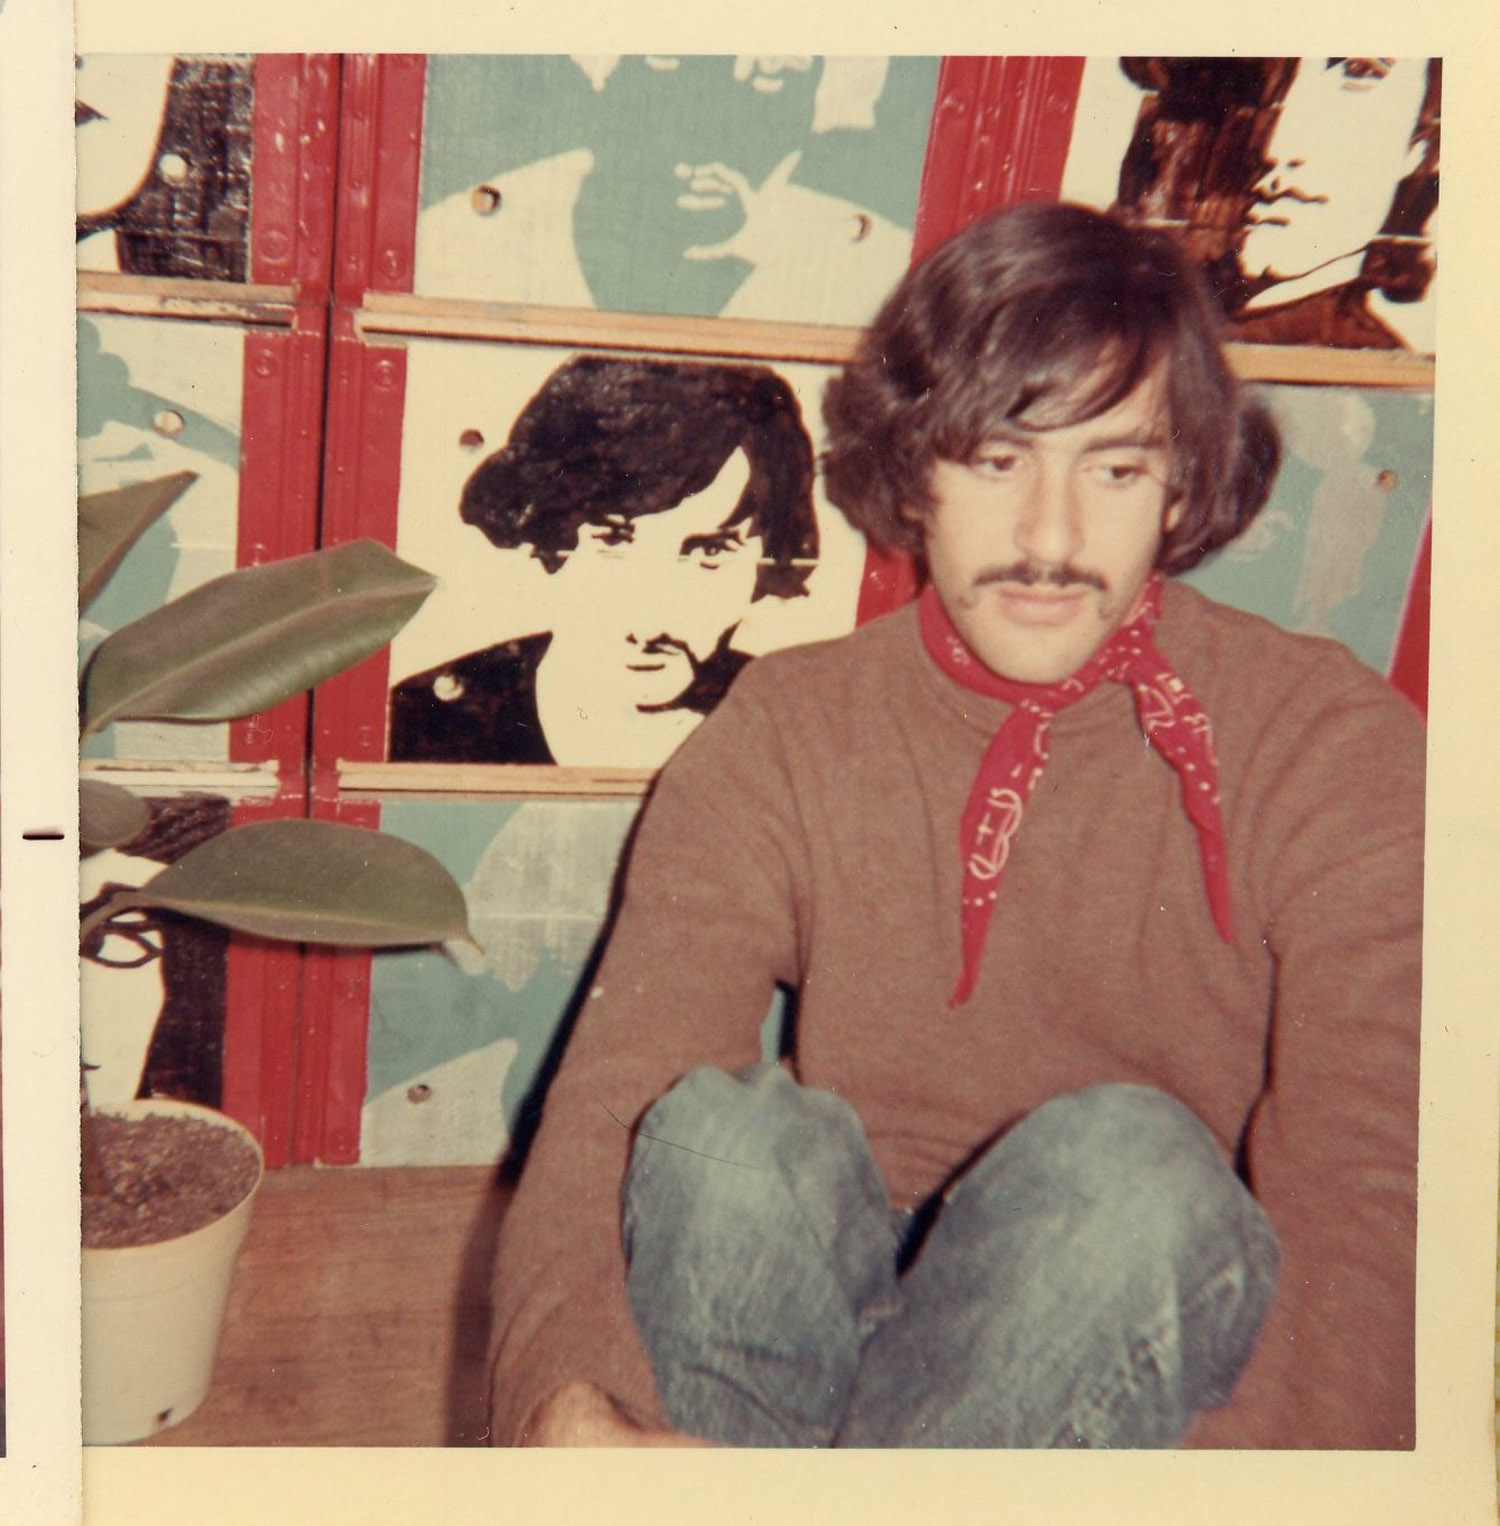 Marc in front of room divider / bookcase made of milk crates, painted by Carla, c. 1969.